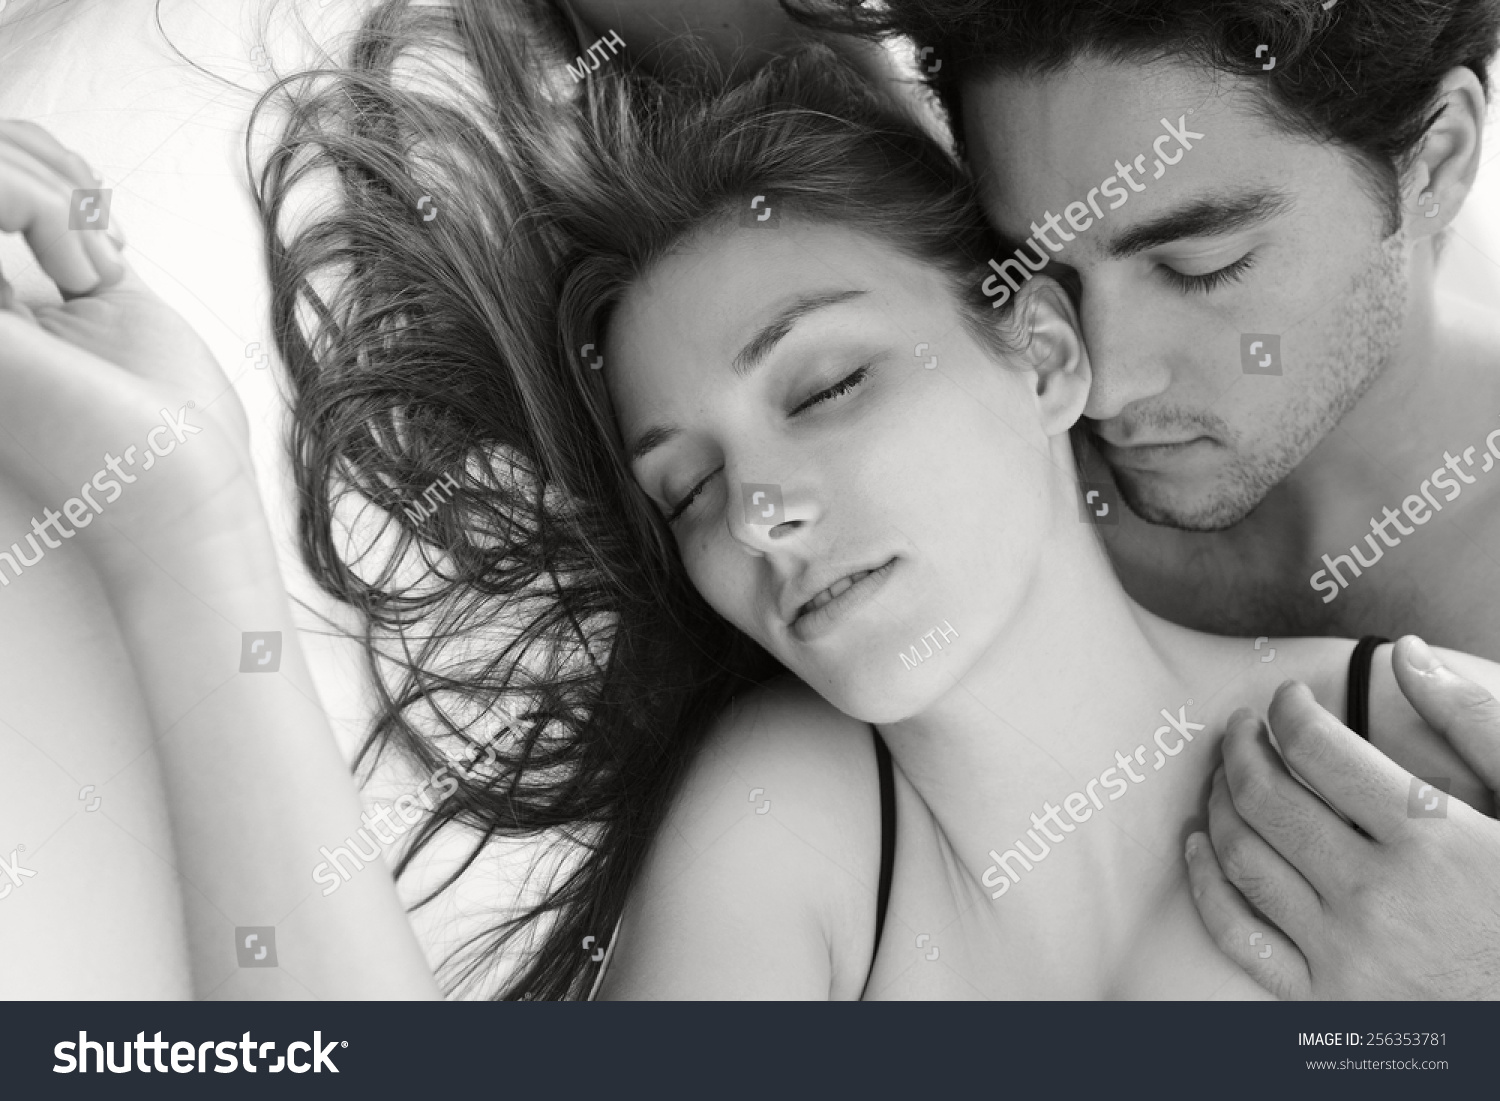 Black white portrait young attractive romantic stock photo edit now